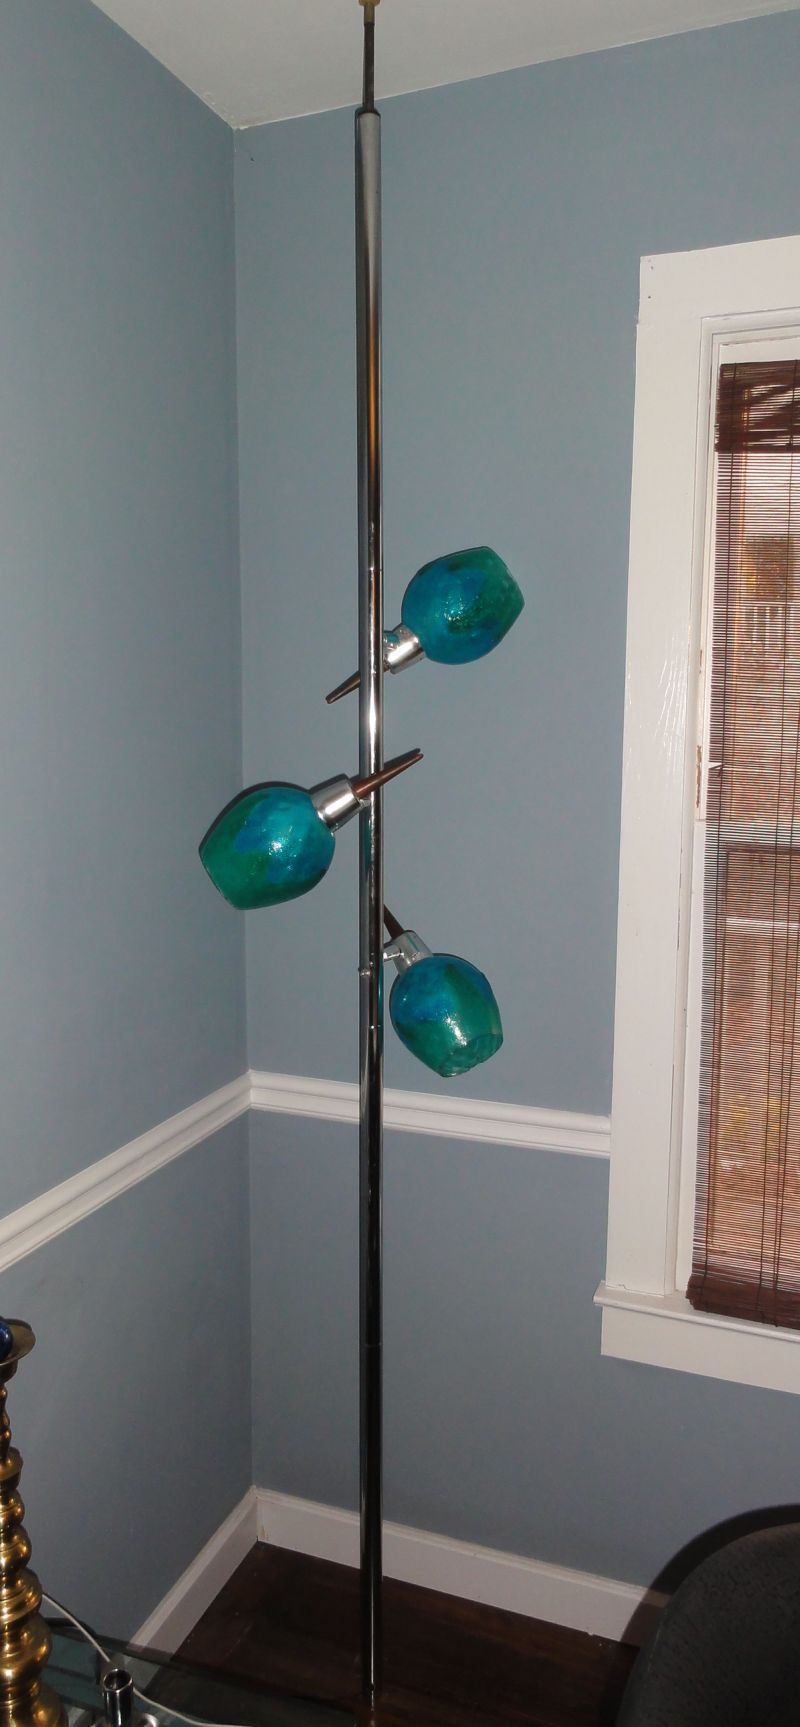 nice lamp...would like to own it